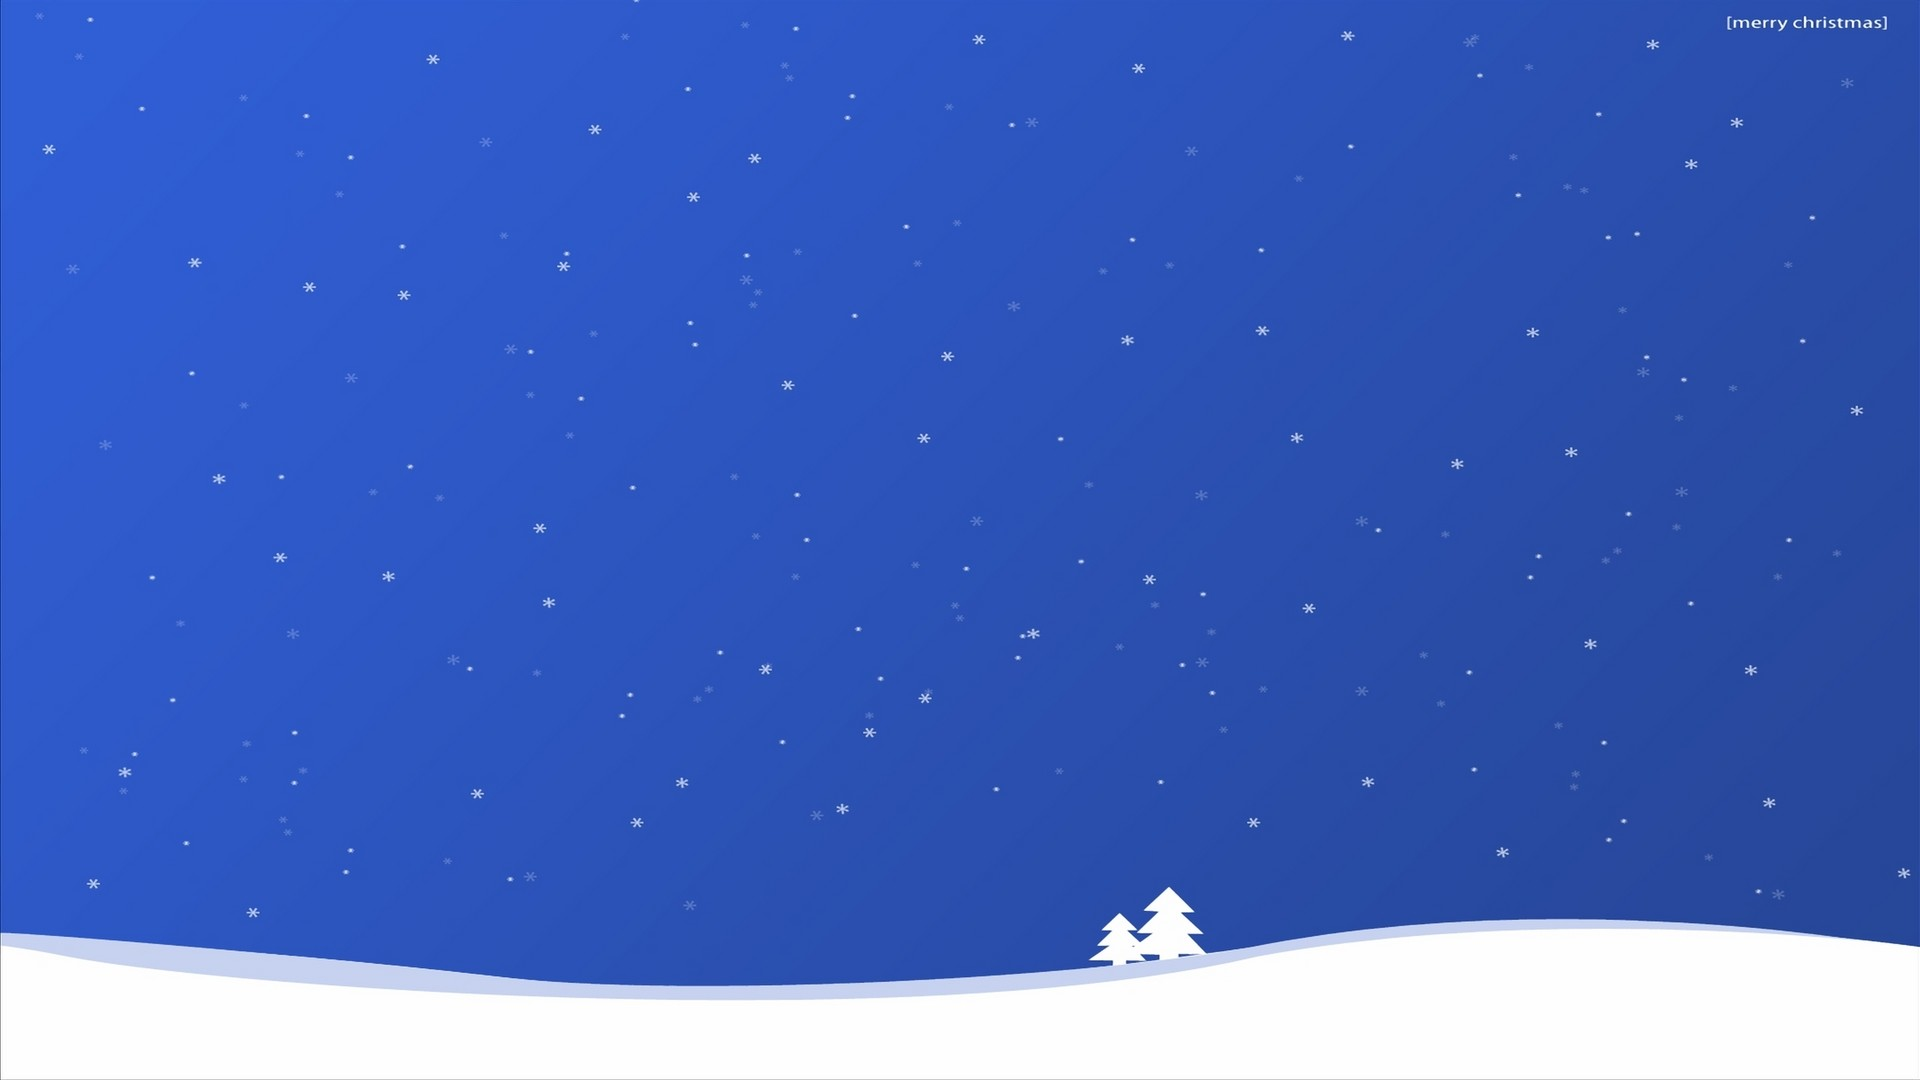 1920x1080 Hd Christmas Wallpaper  | The Momment